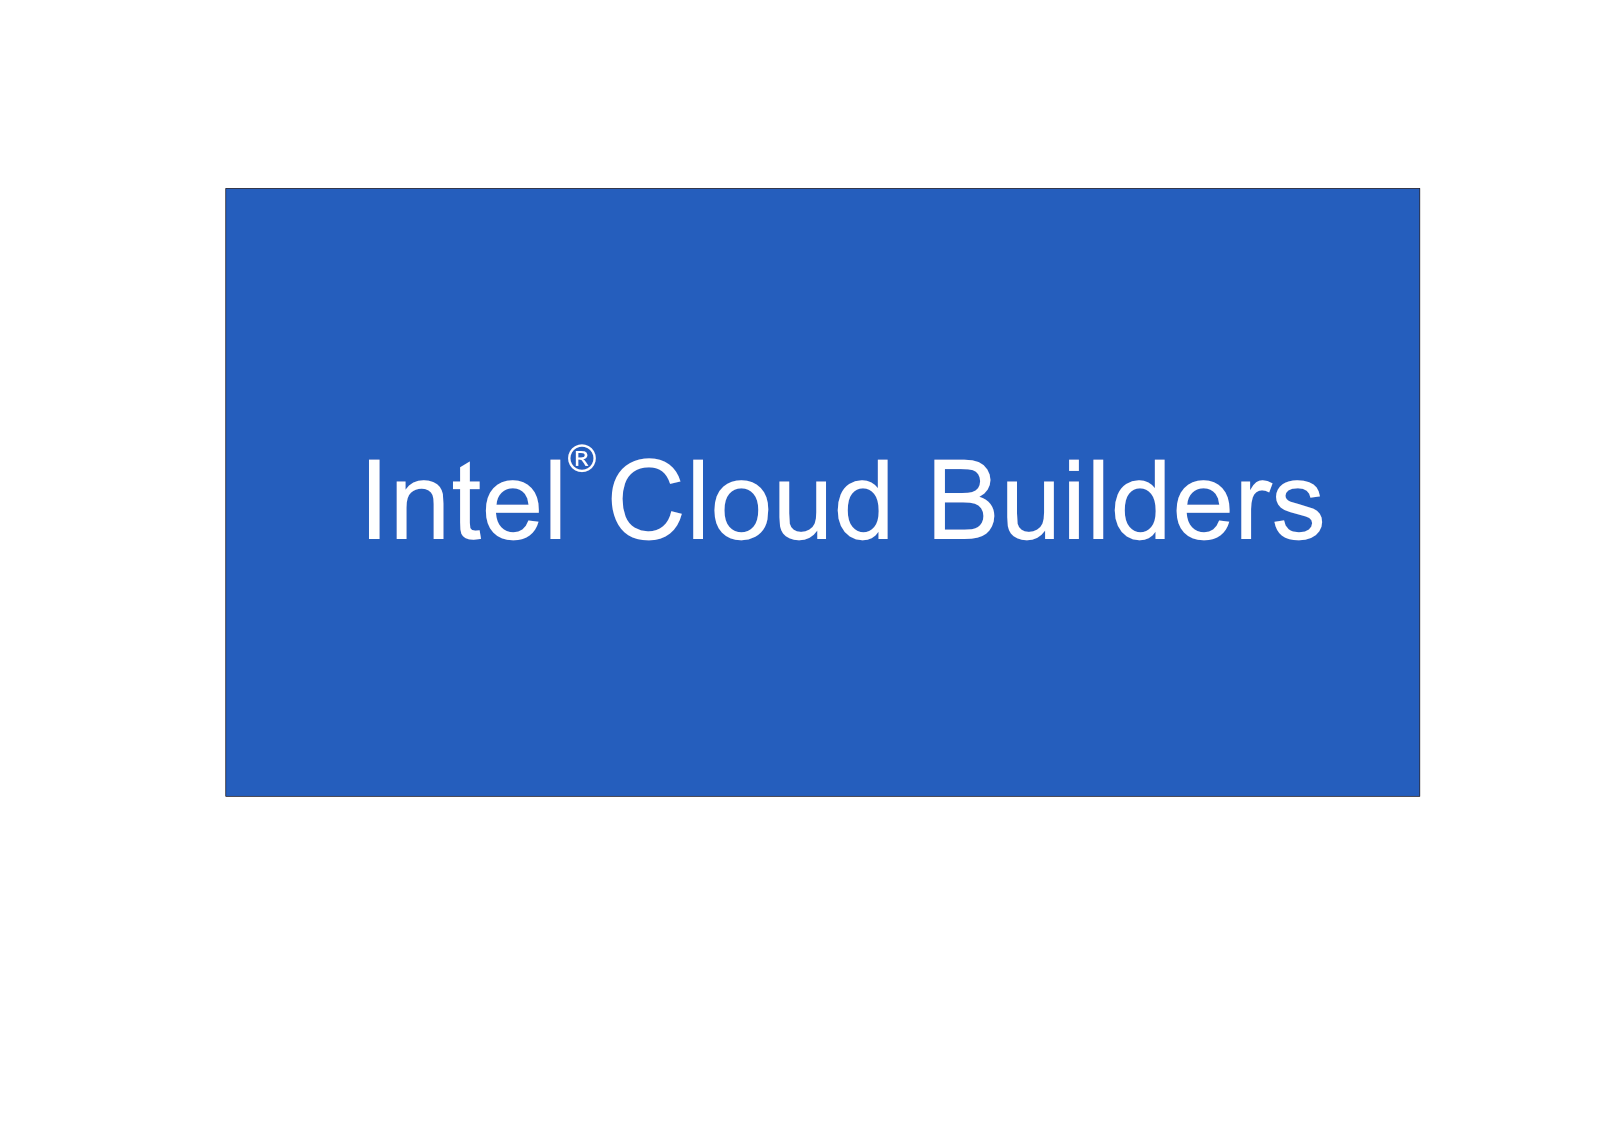 Intel Cloud Builders